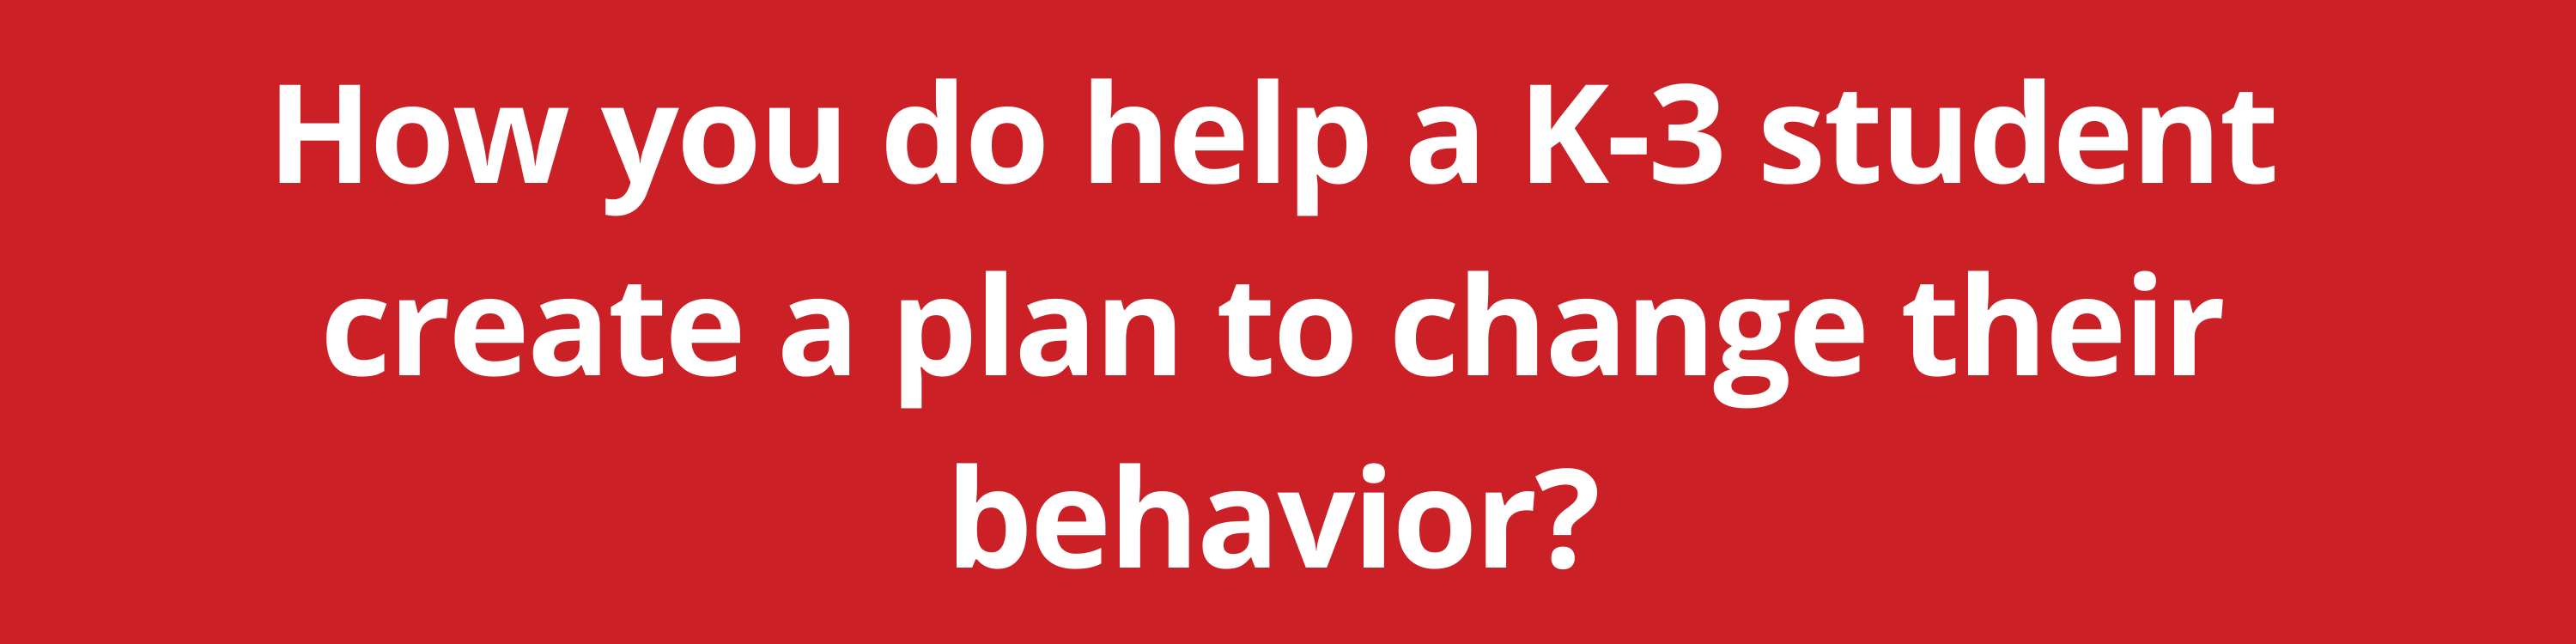 How you do help a K-3 student create a plan to change their behavior?